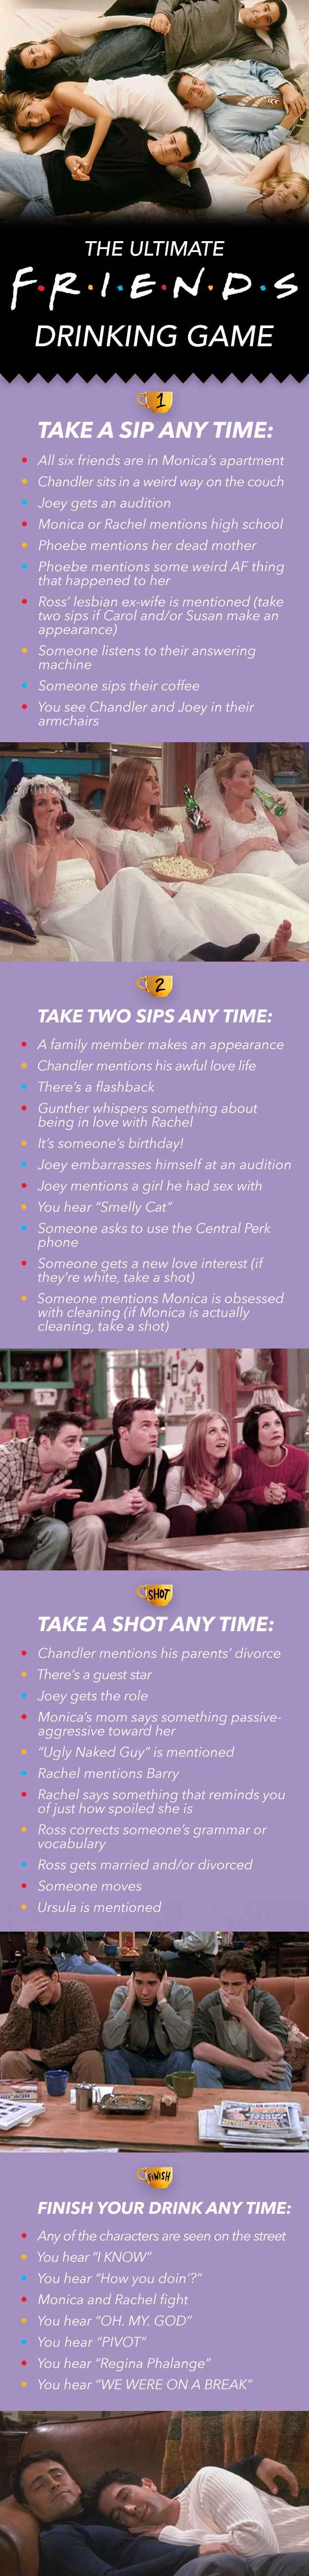 "The Ultimate ""Friends"" Drinking Game - this has 'night in carnage' written all over it"